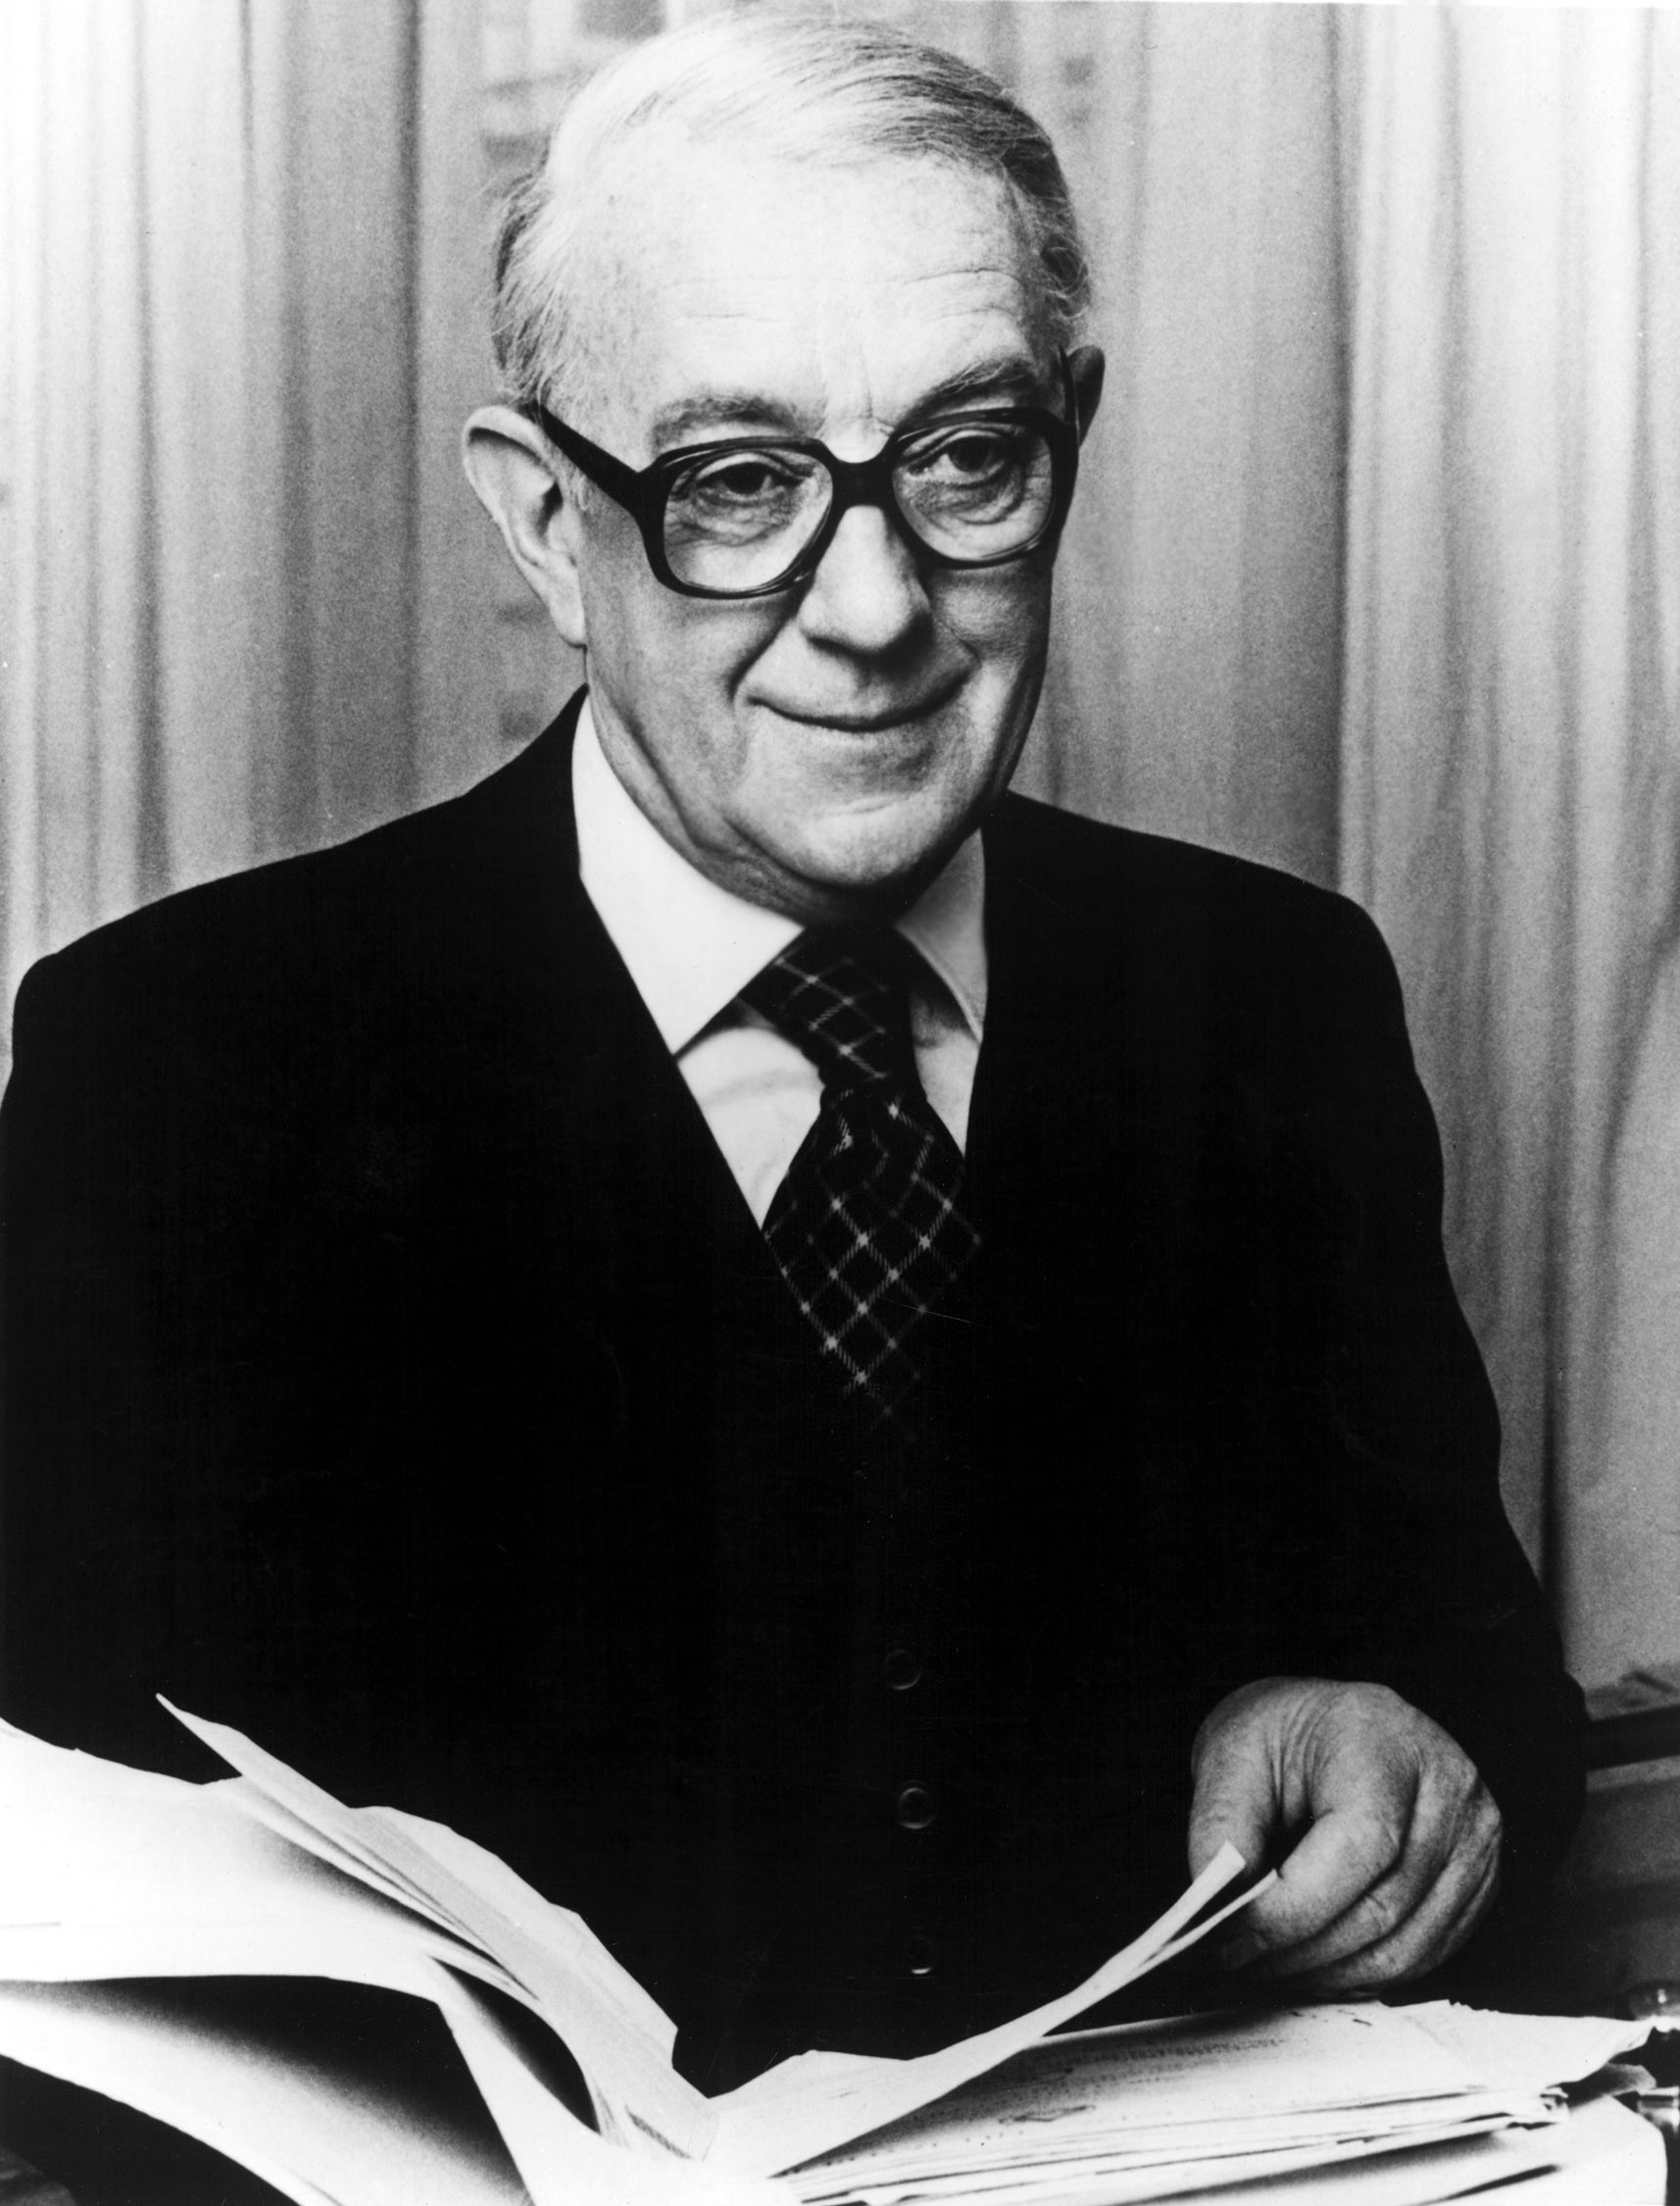 Alec Guinness as George Smiley/ Beggarman  in Tinker Tailor Soldier Spy, 1979